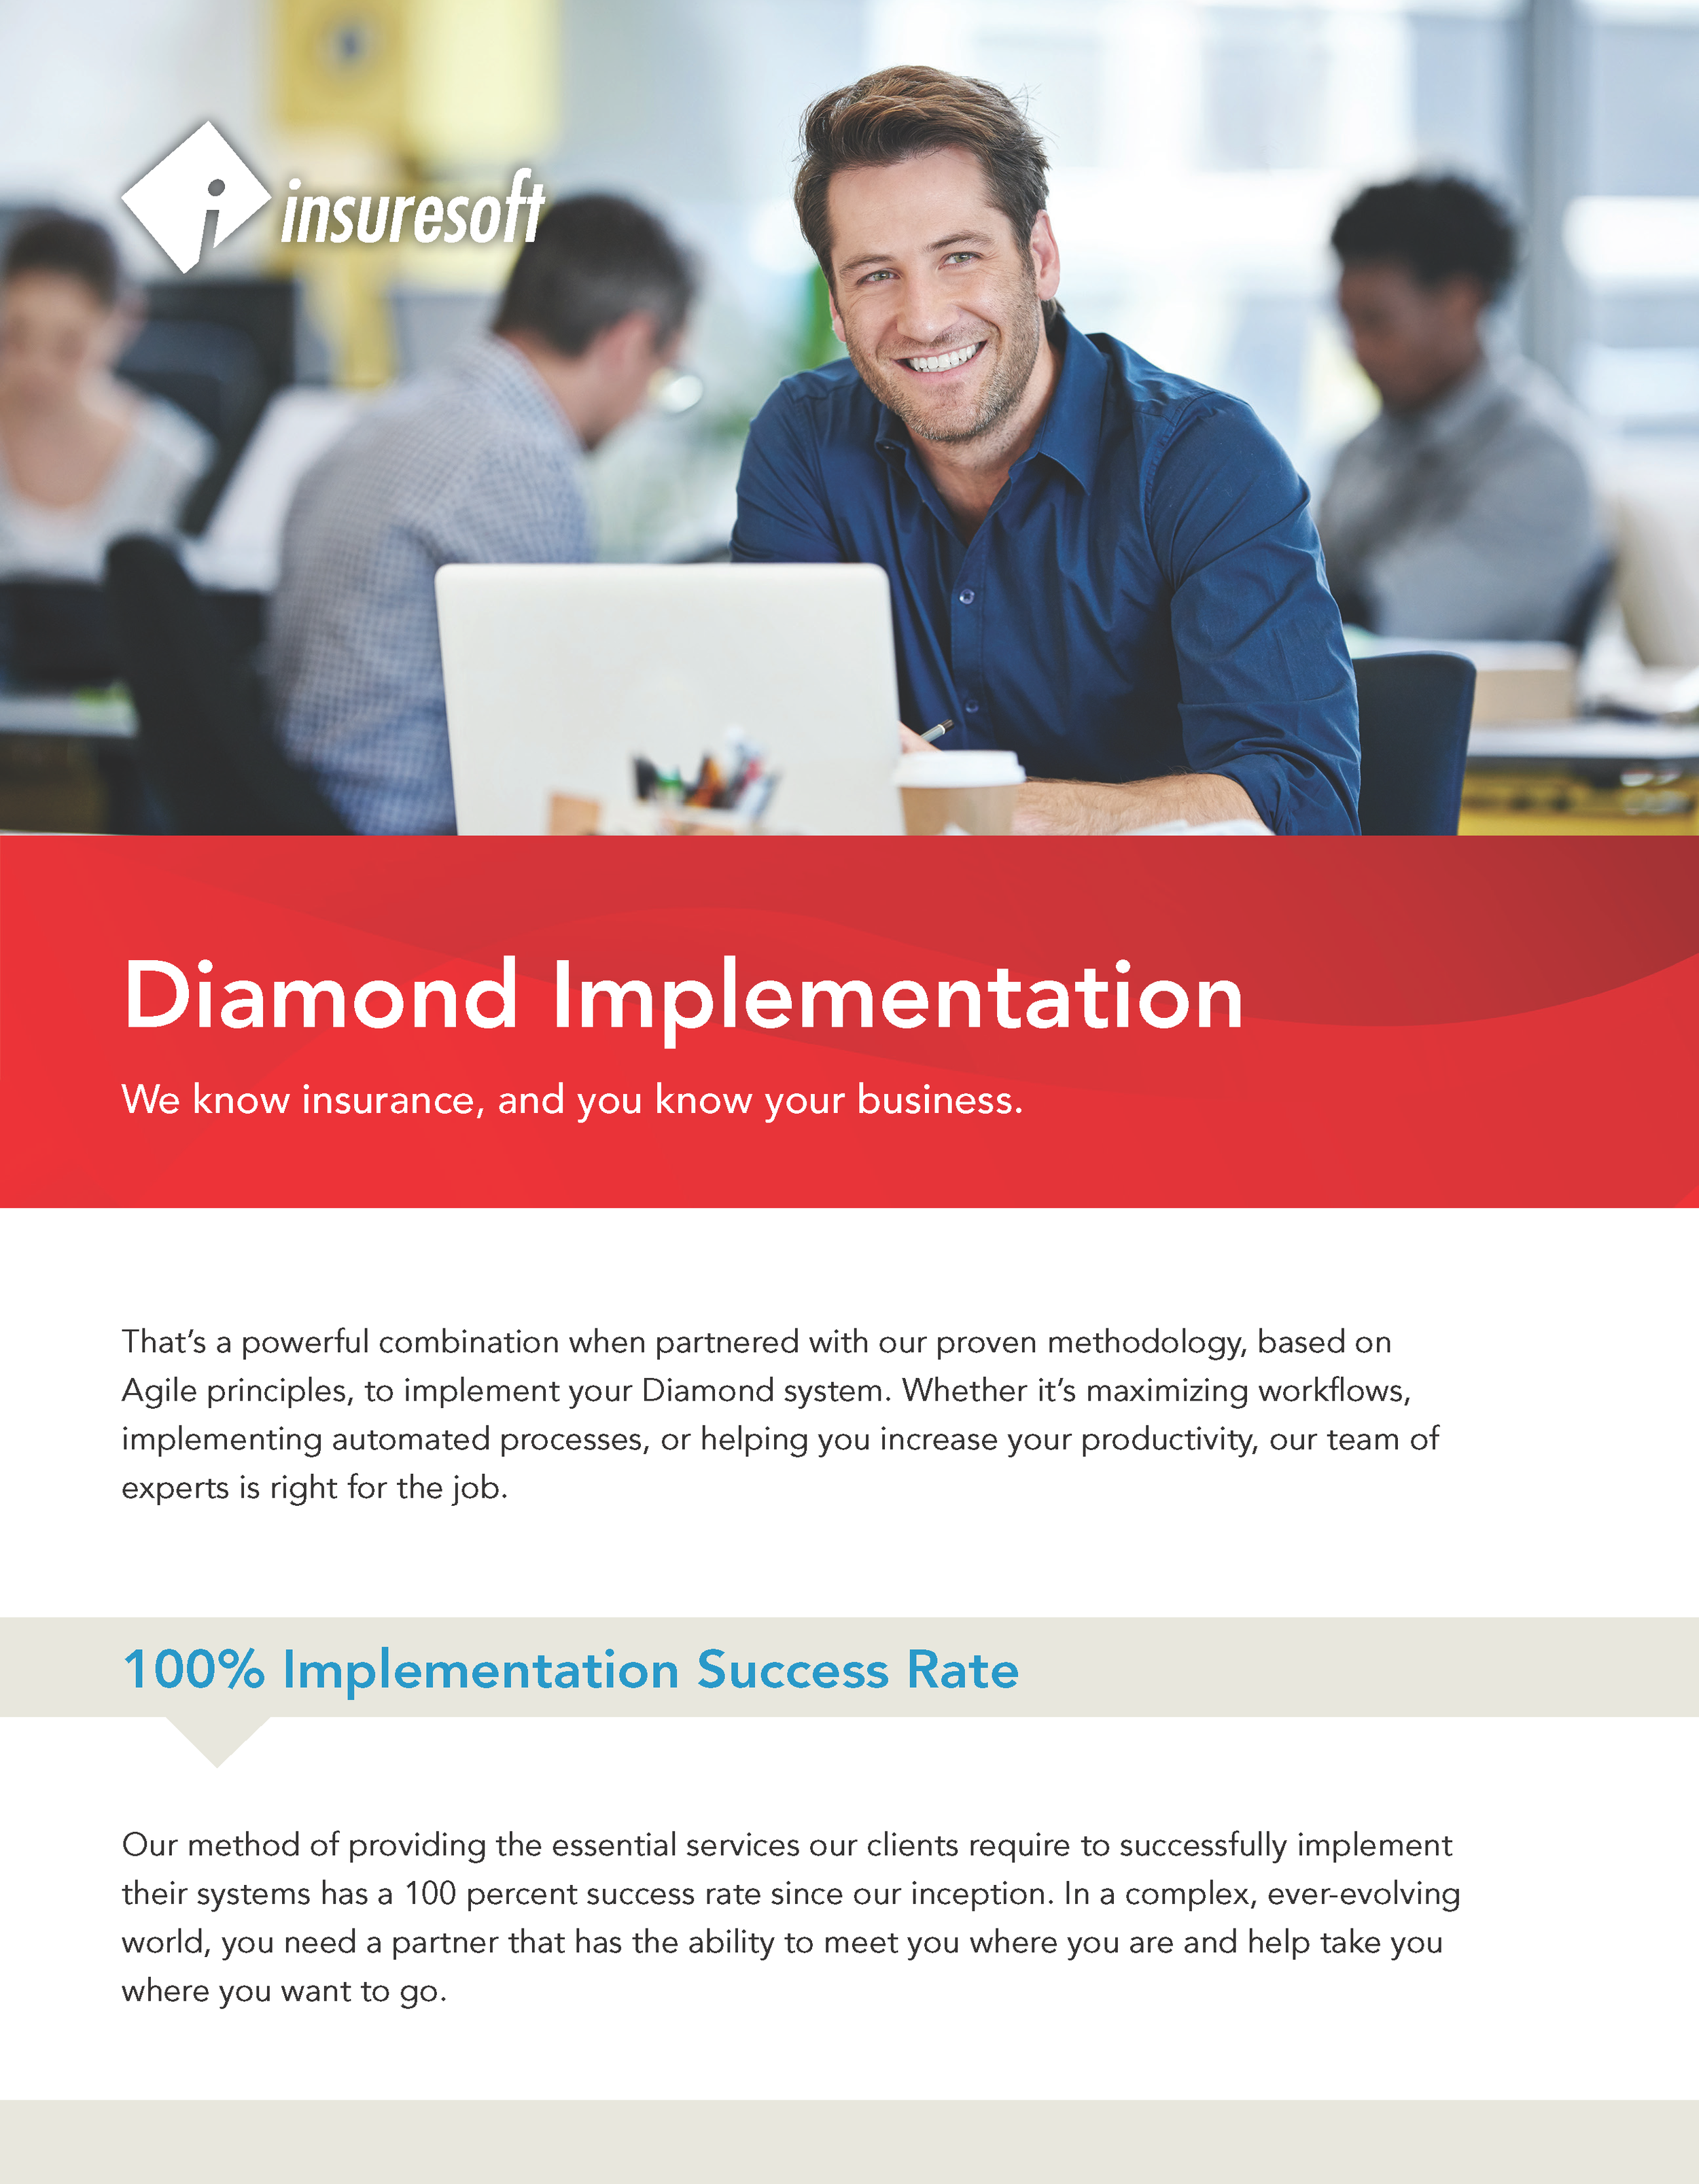 Insuresoft provides the essential services that our clients require to successfully implement their system. We've enjoyed a 100% sucdessful implementation rate with our clients since our inceptions. Click here for the Diamond Claims Administration Datasheet.